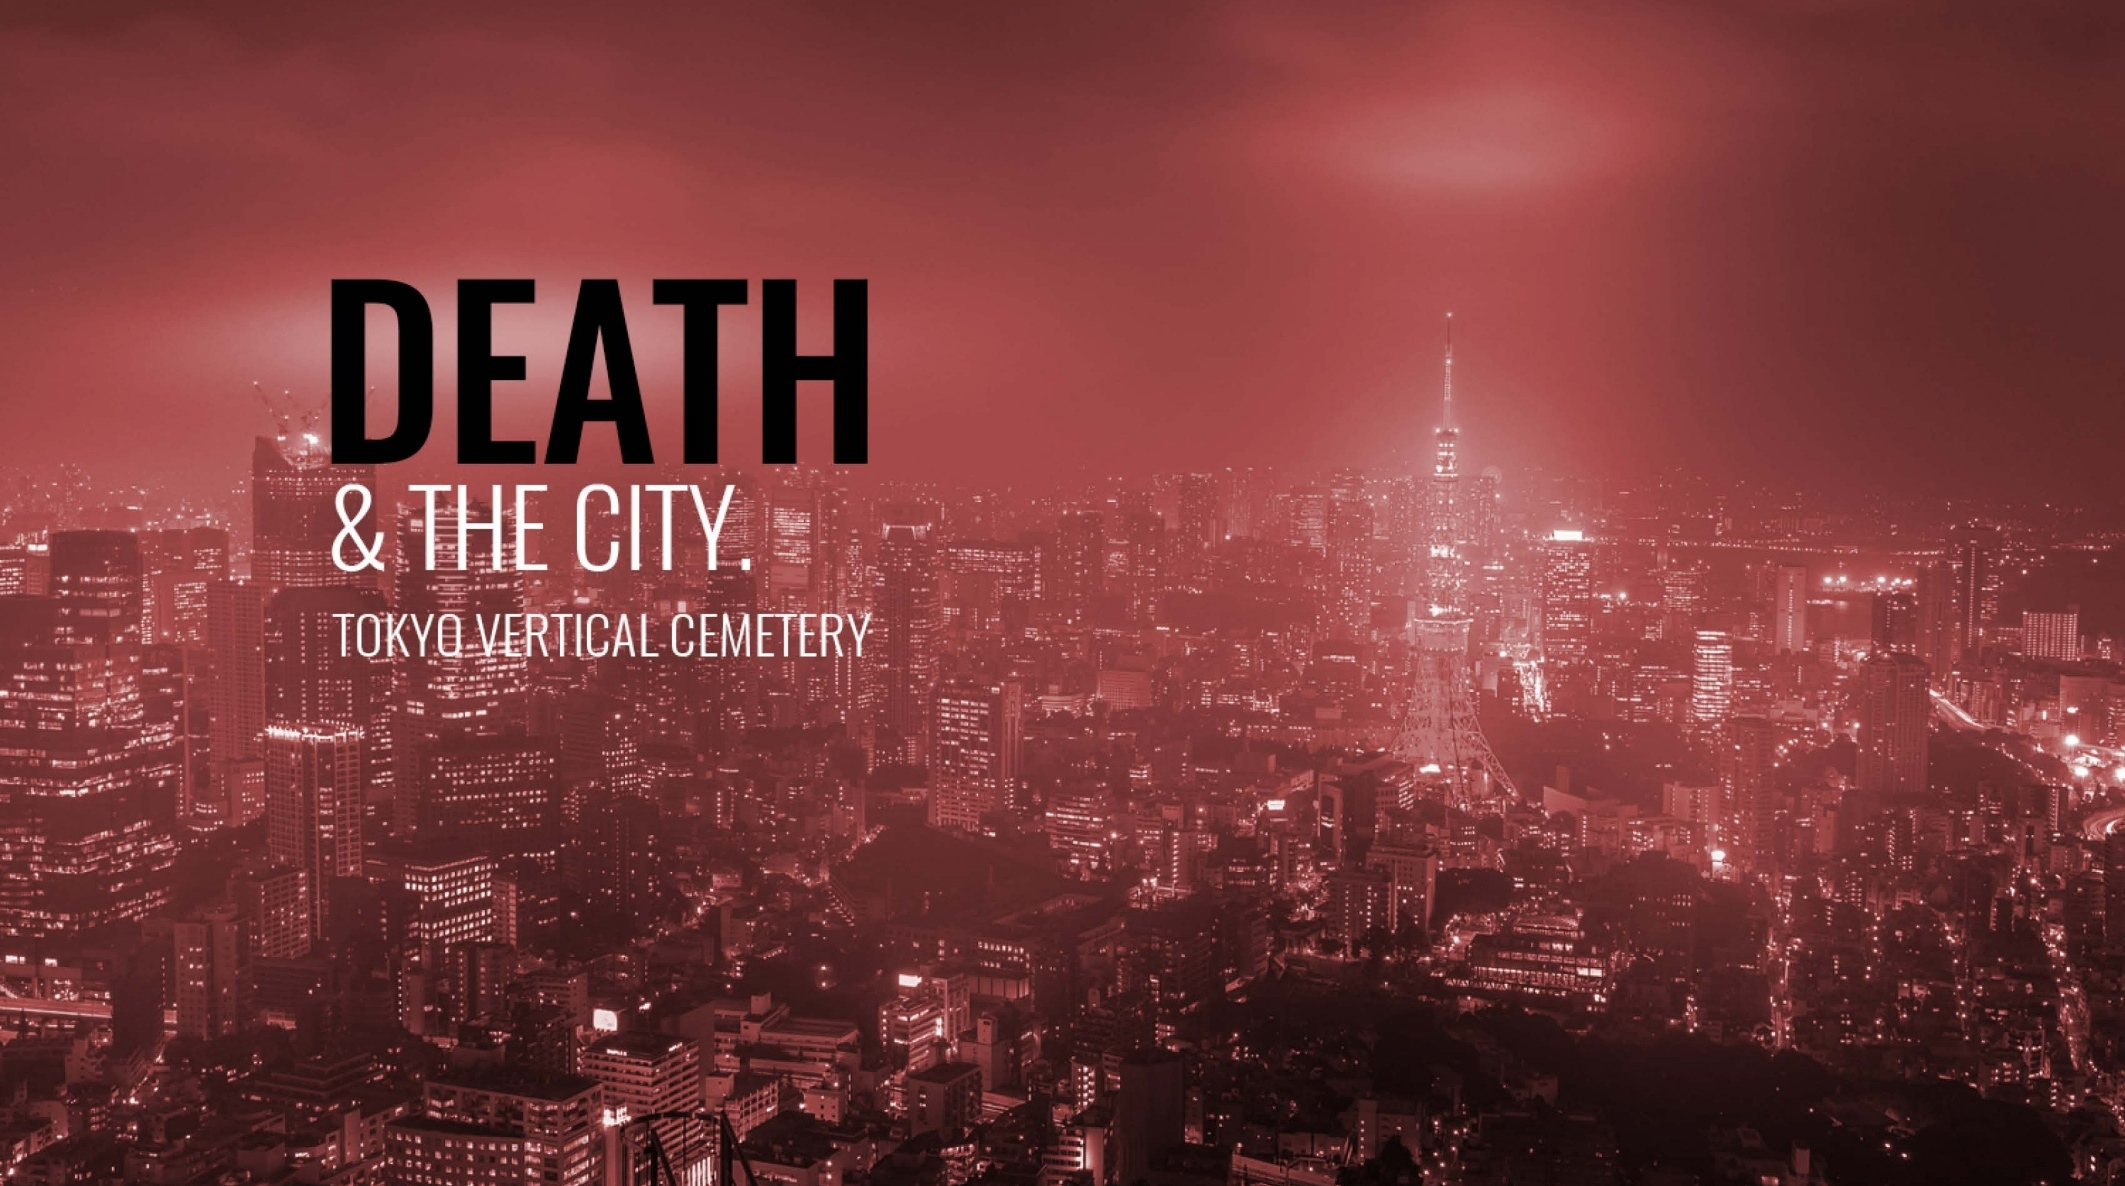 DEATH & THE CITY. Tokyo Vertical Cemetery